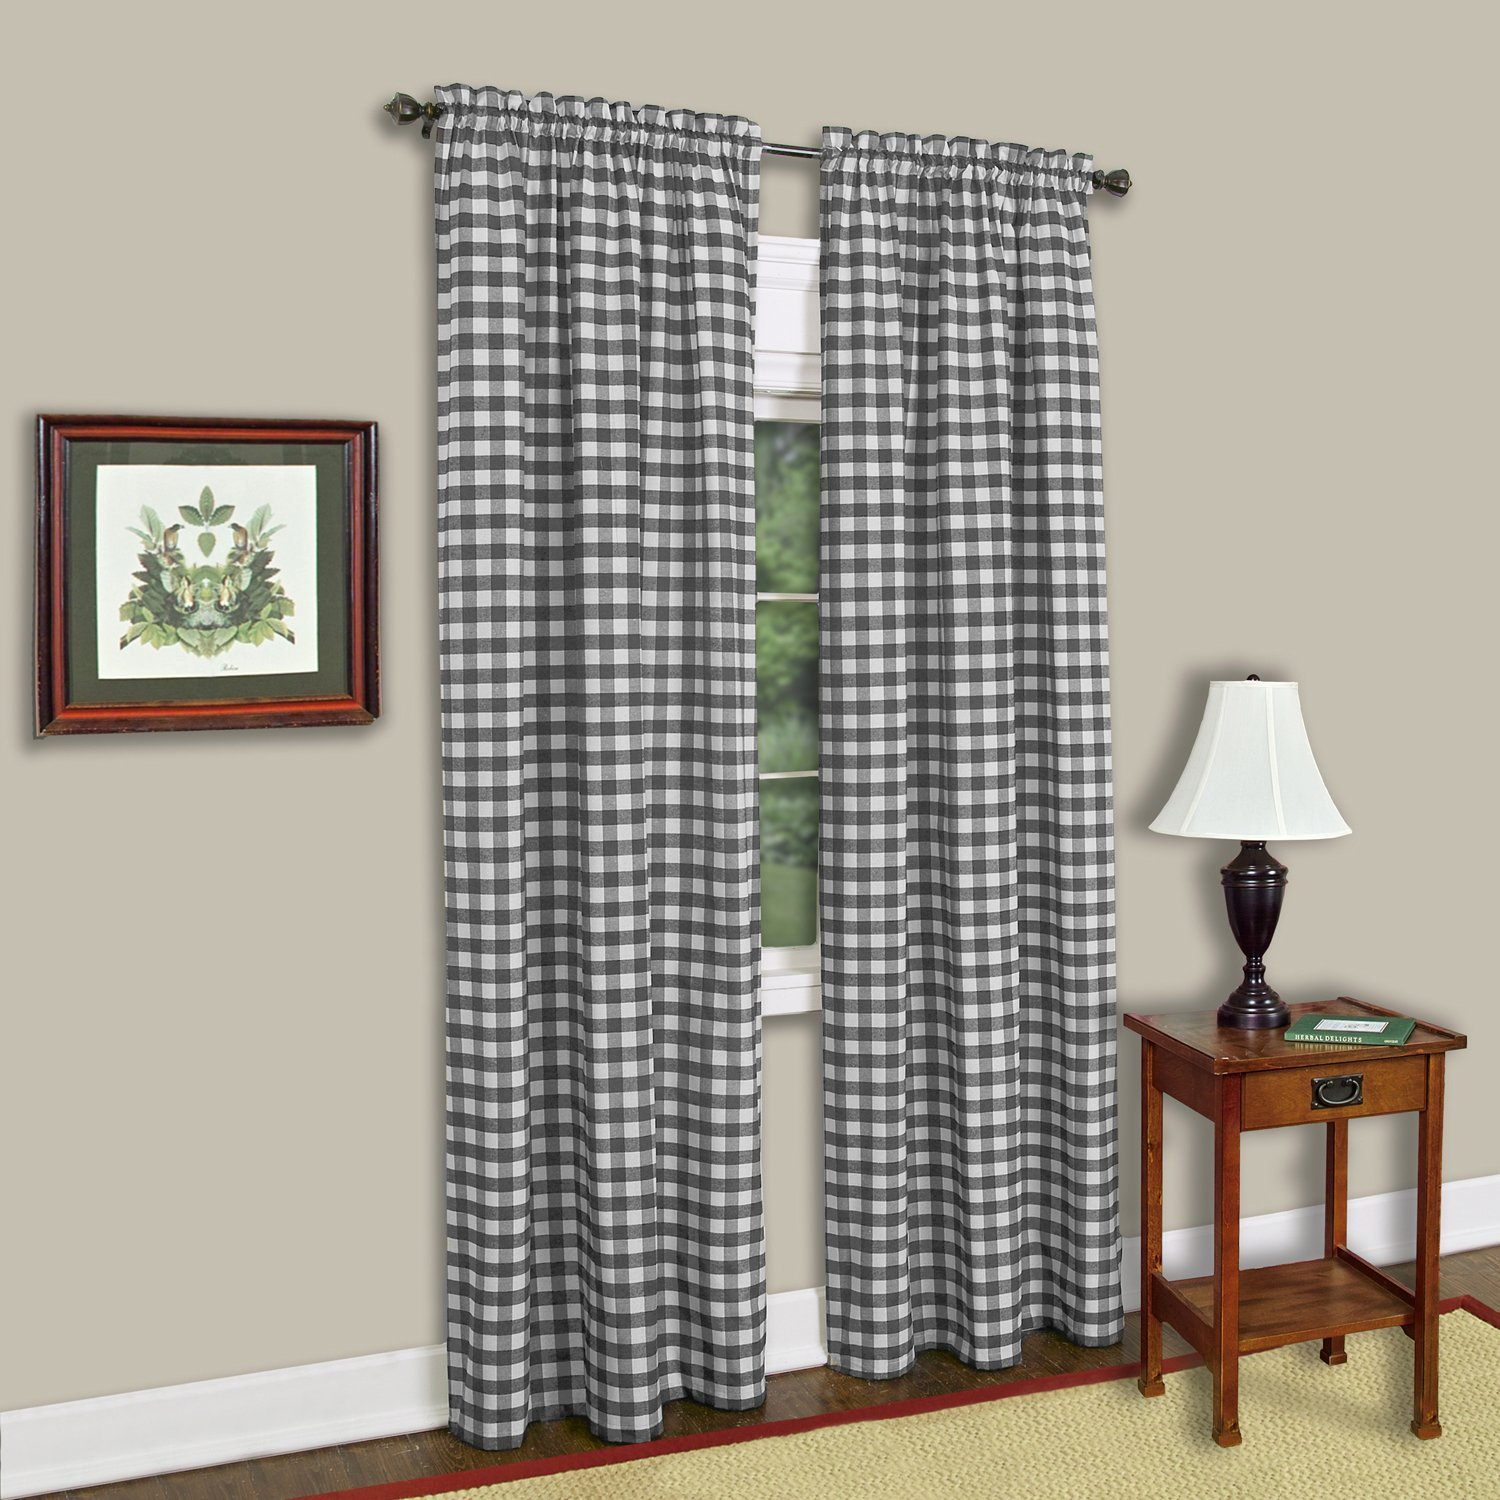 Amazon.com: Achim Home Furnishings Buffalo Check Window Curtain Panel, Black /White, 42 X 84 Inch: Home U0026 Kitchen